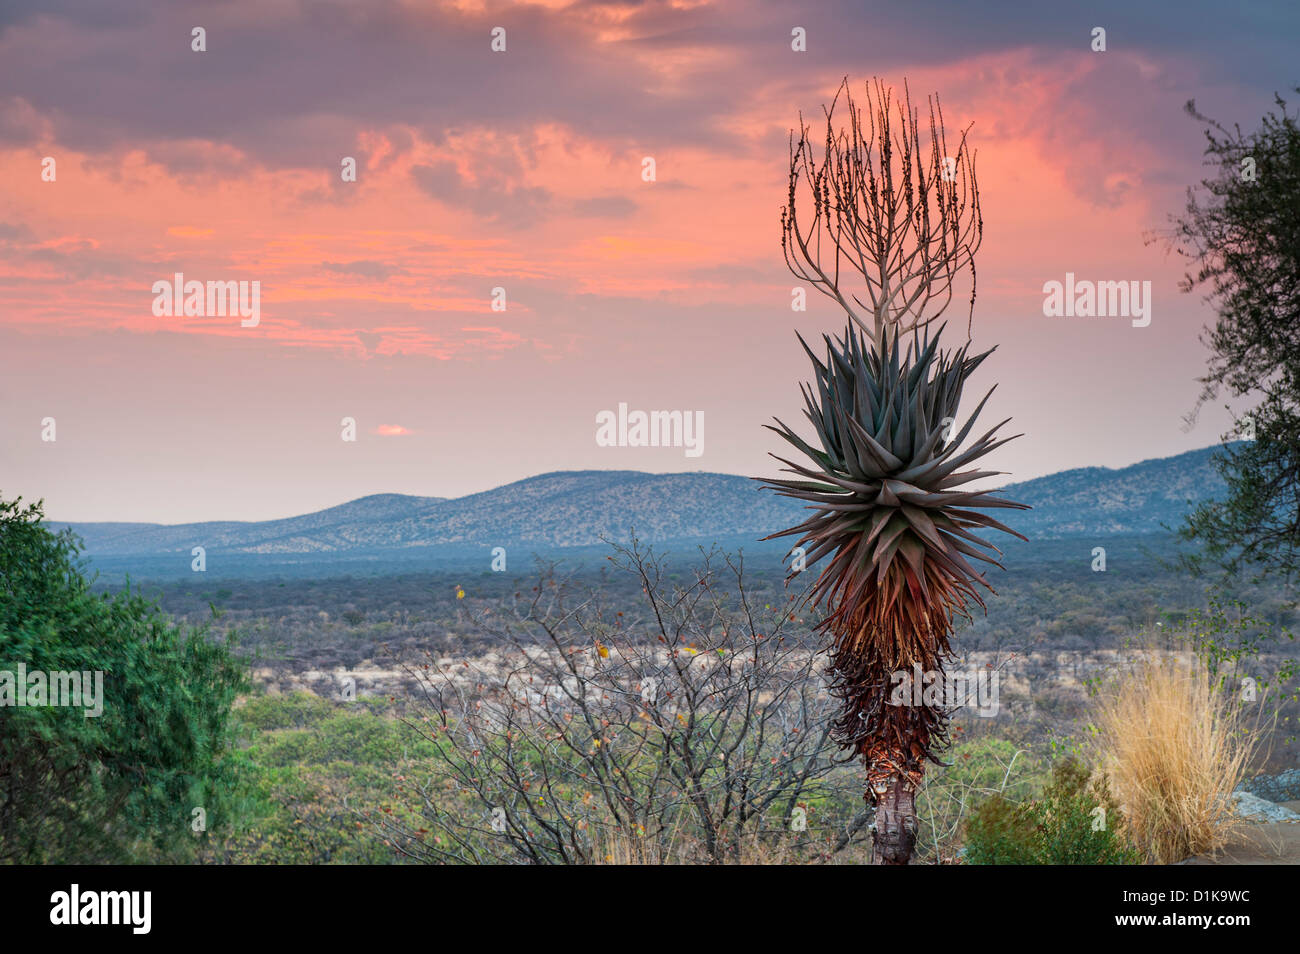 Damaraland sunset with aloe and Fransfontein mountains between Outjo and Khorixas in northwestern Namibia, Africa - Stock Image